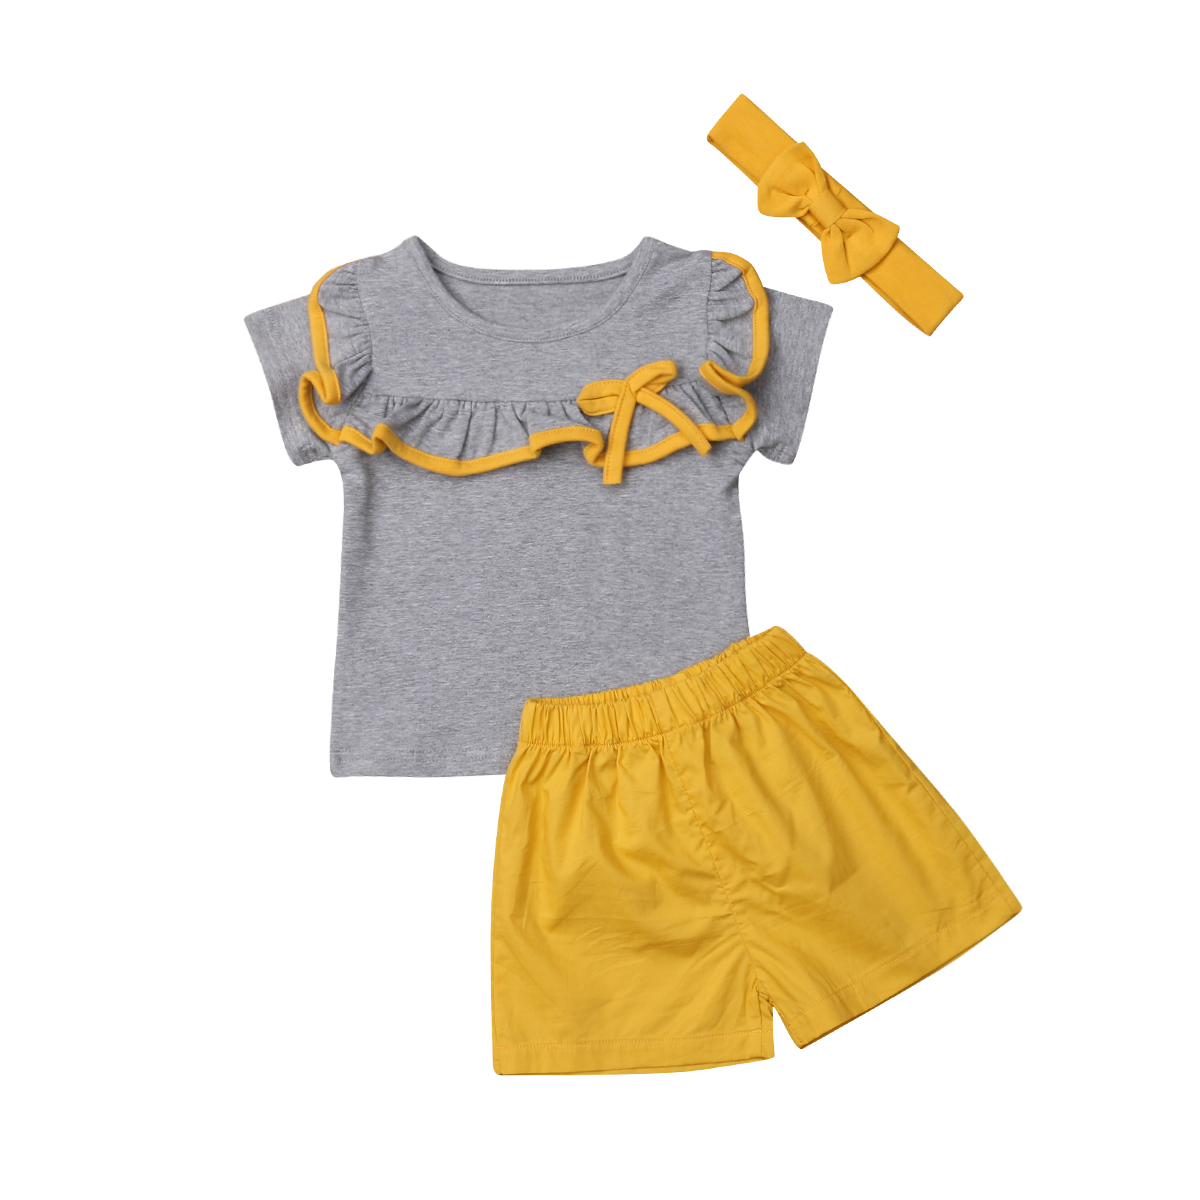 Toddler Kids Baby Girl Boys Ruffle Sister Brother Tops Shorts Matching Outfits